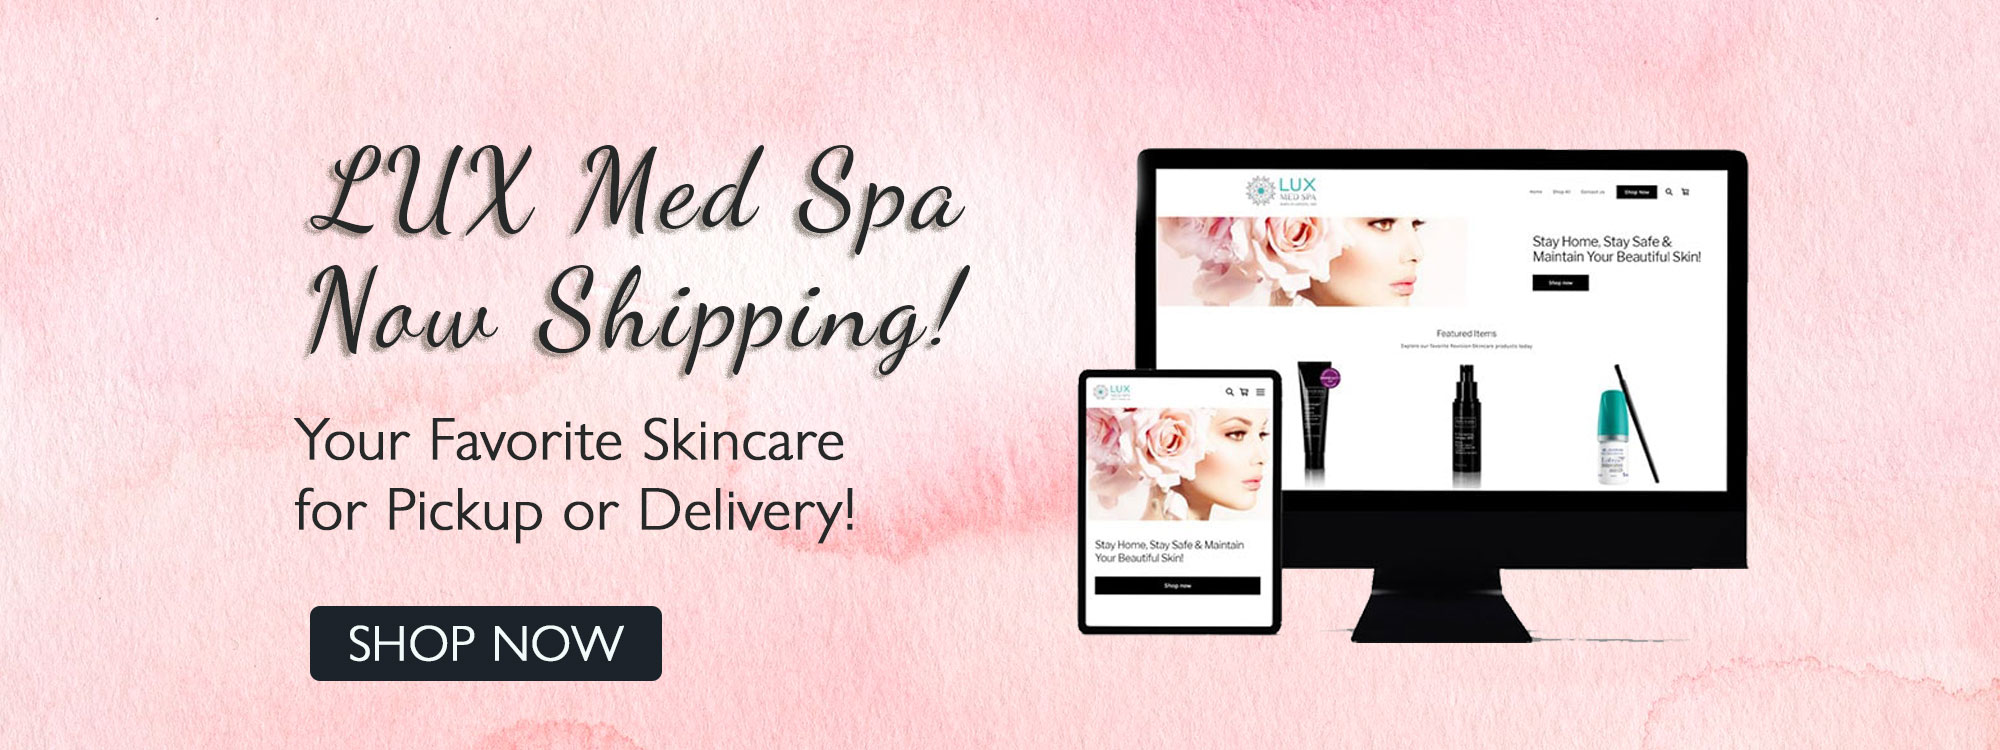 LUX Med Spa - now shipping!